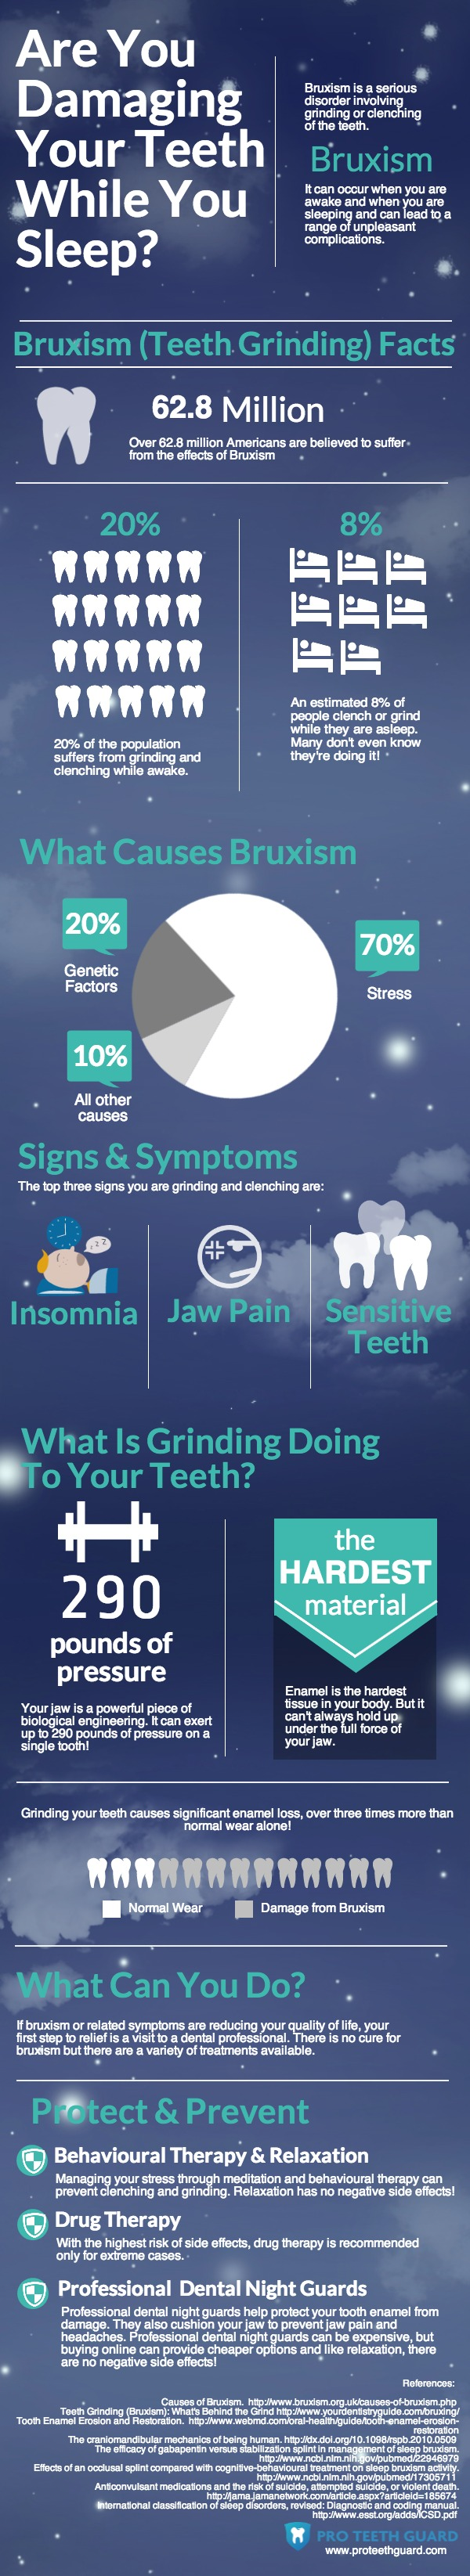 Are you damaging your teeth while you sleep?